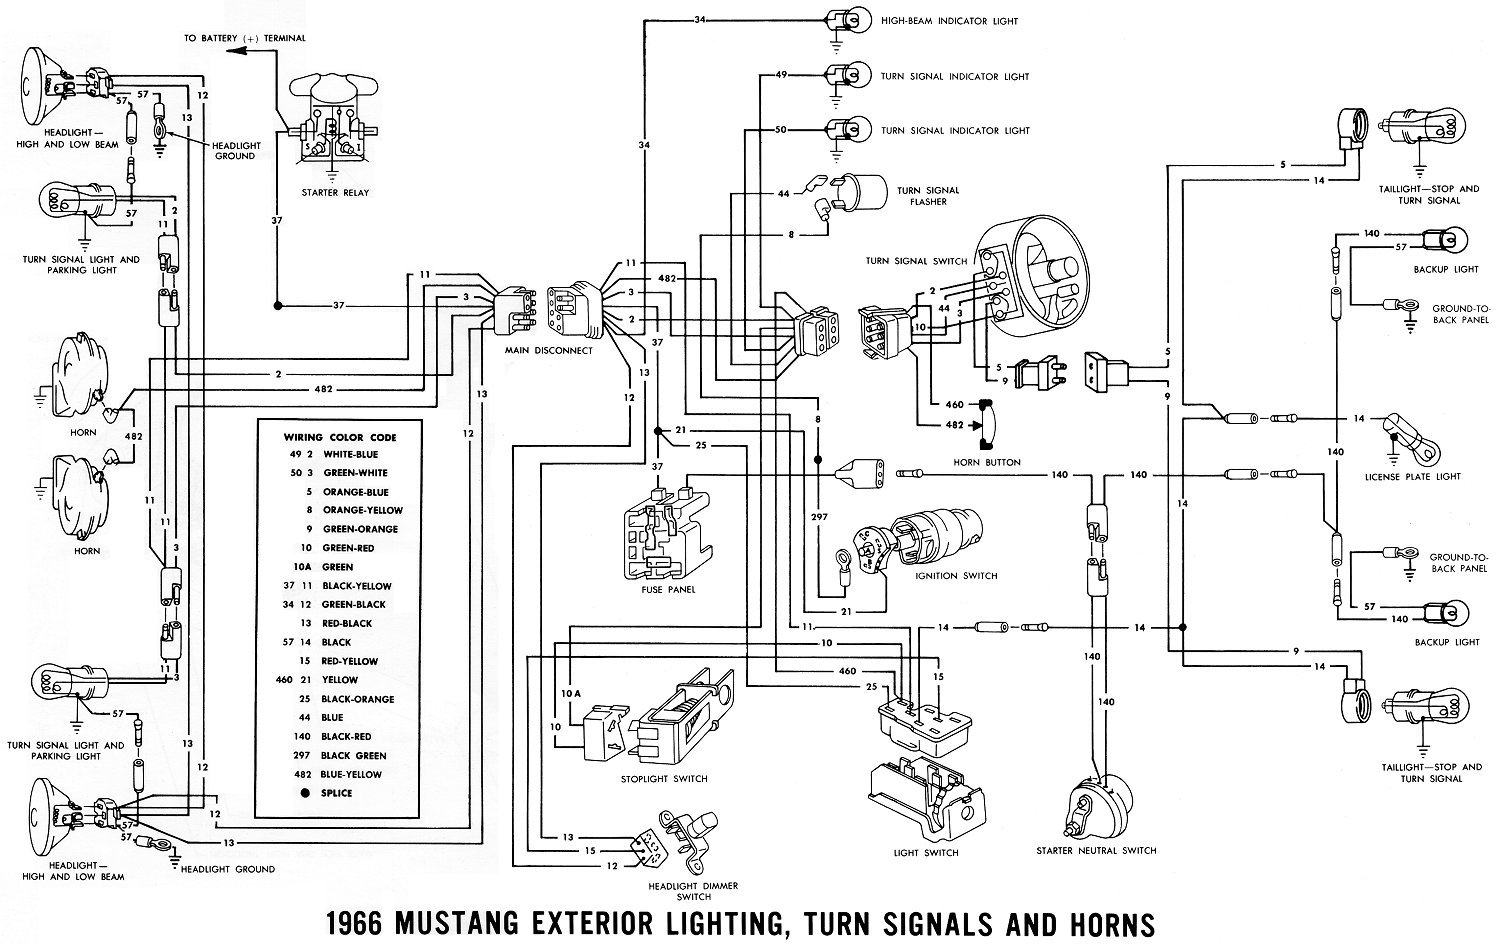 66 mustang convertible wiring harness - wiring diagrams long sick-dish -  sick-dish.ipiccolidi3p.it  sick-dish.ipiccolidi3p.it